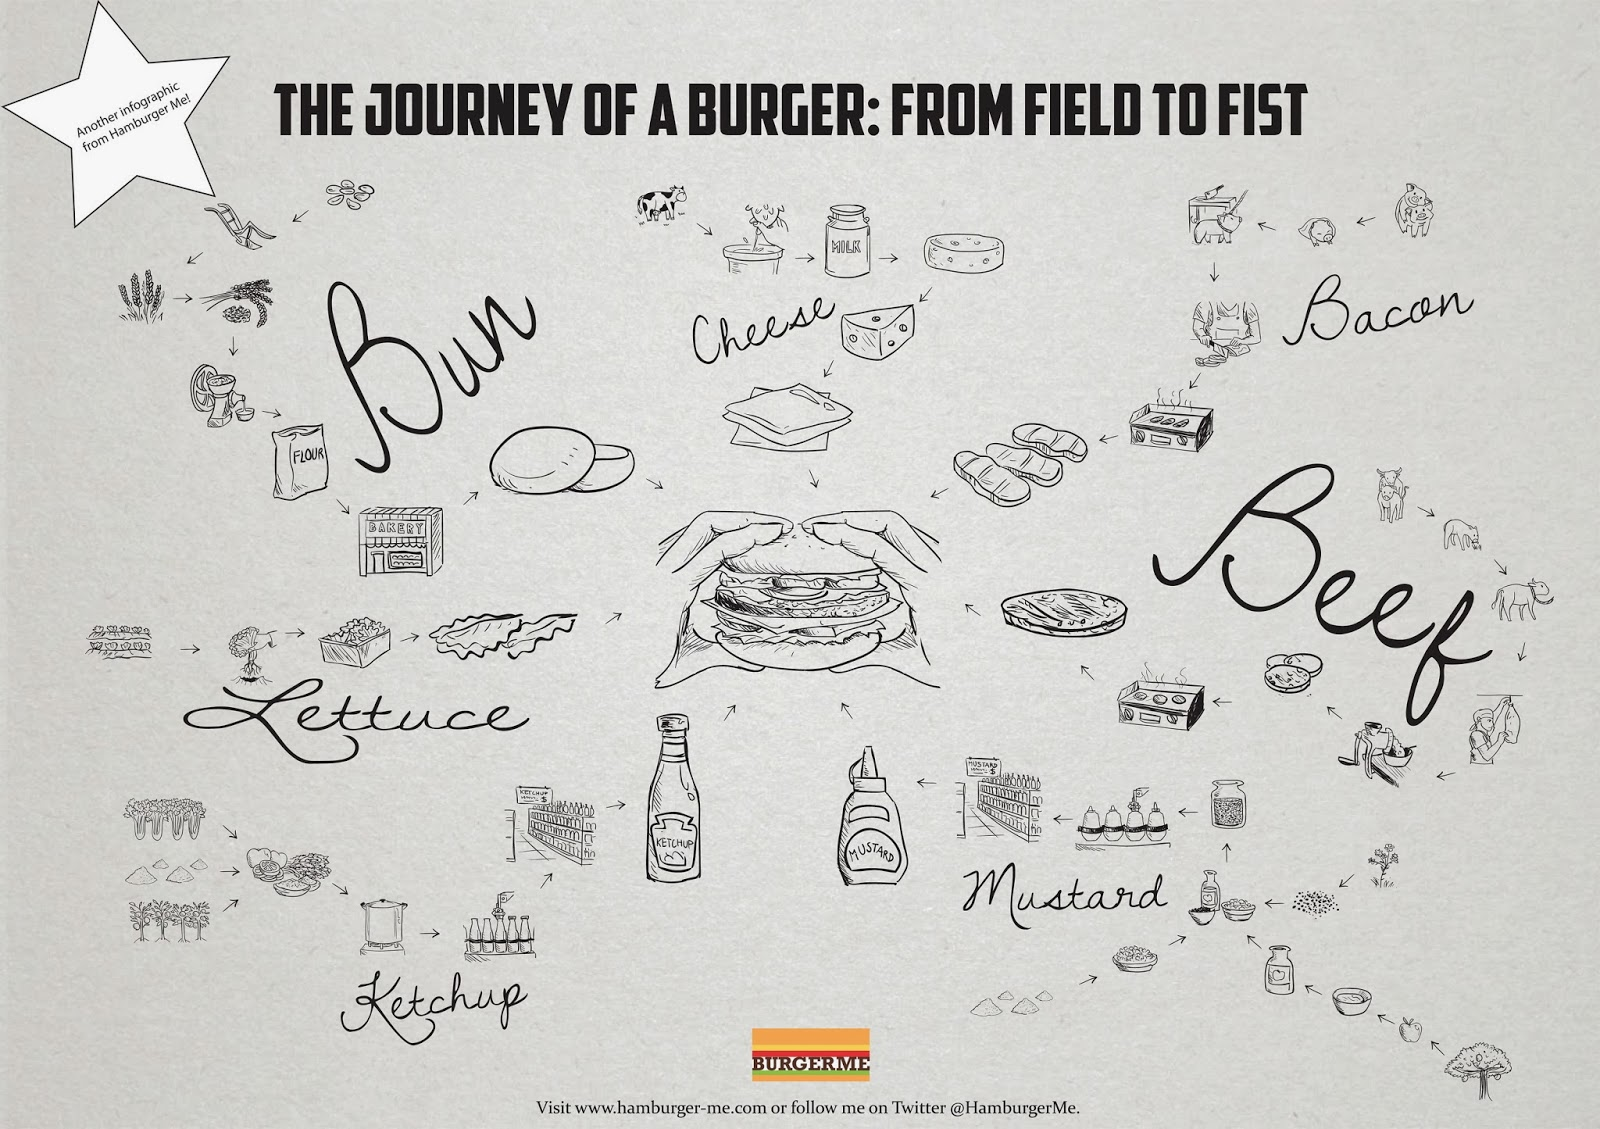 The journey of a cheese burger